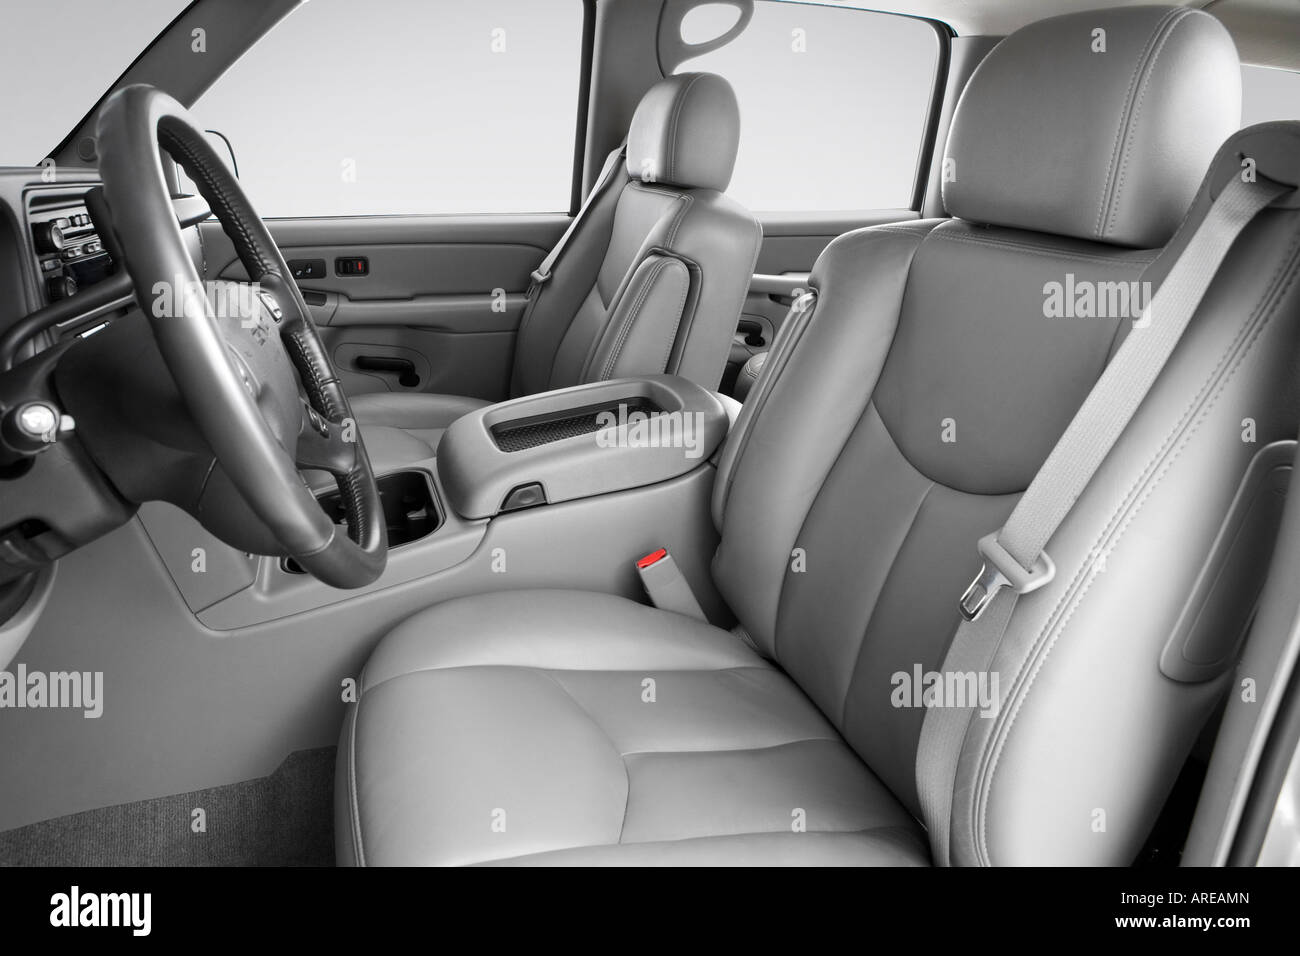 2005 gmc yukon xl 1500 sle in silver front seats stock photo rh alamy com 2006 Yukon XL 2006 Yukon XL